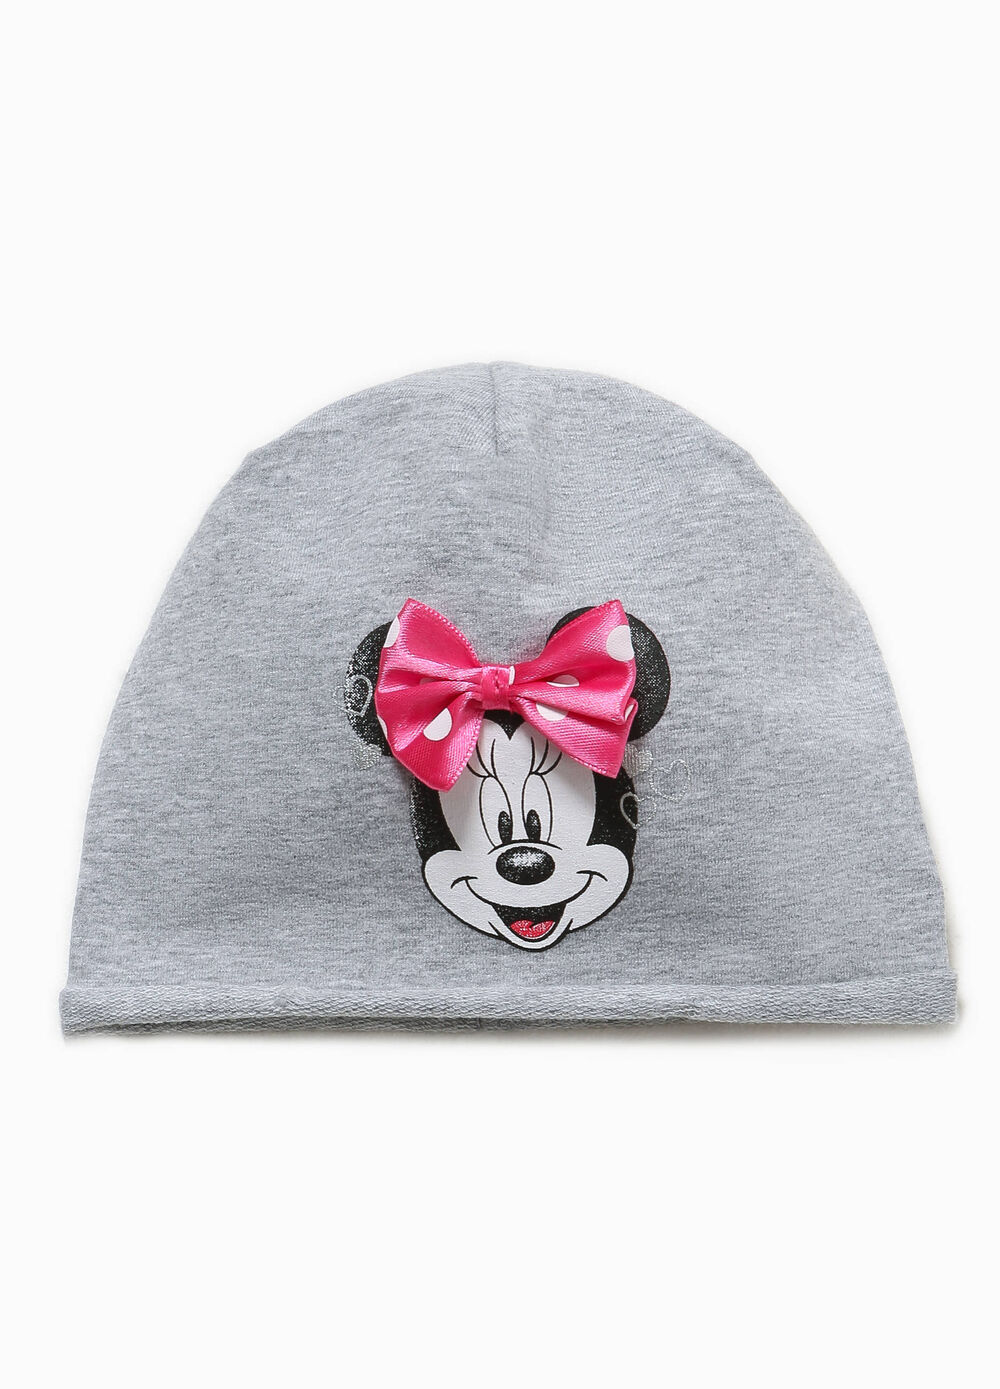 Beanie cap with Minnie Mouse print and bow